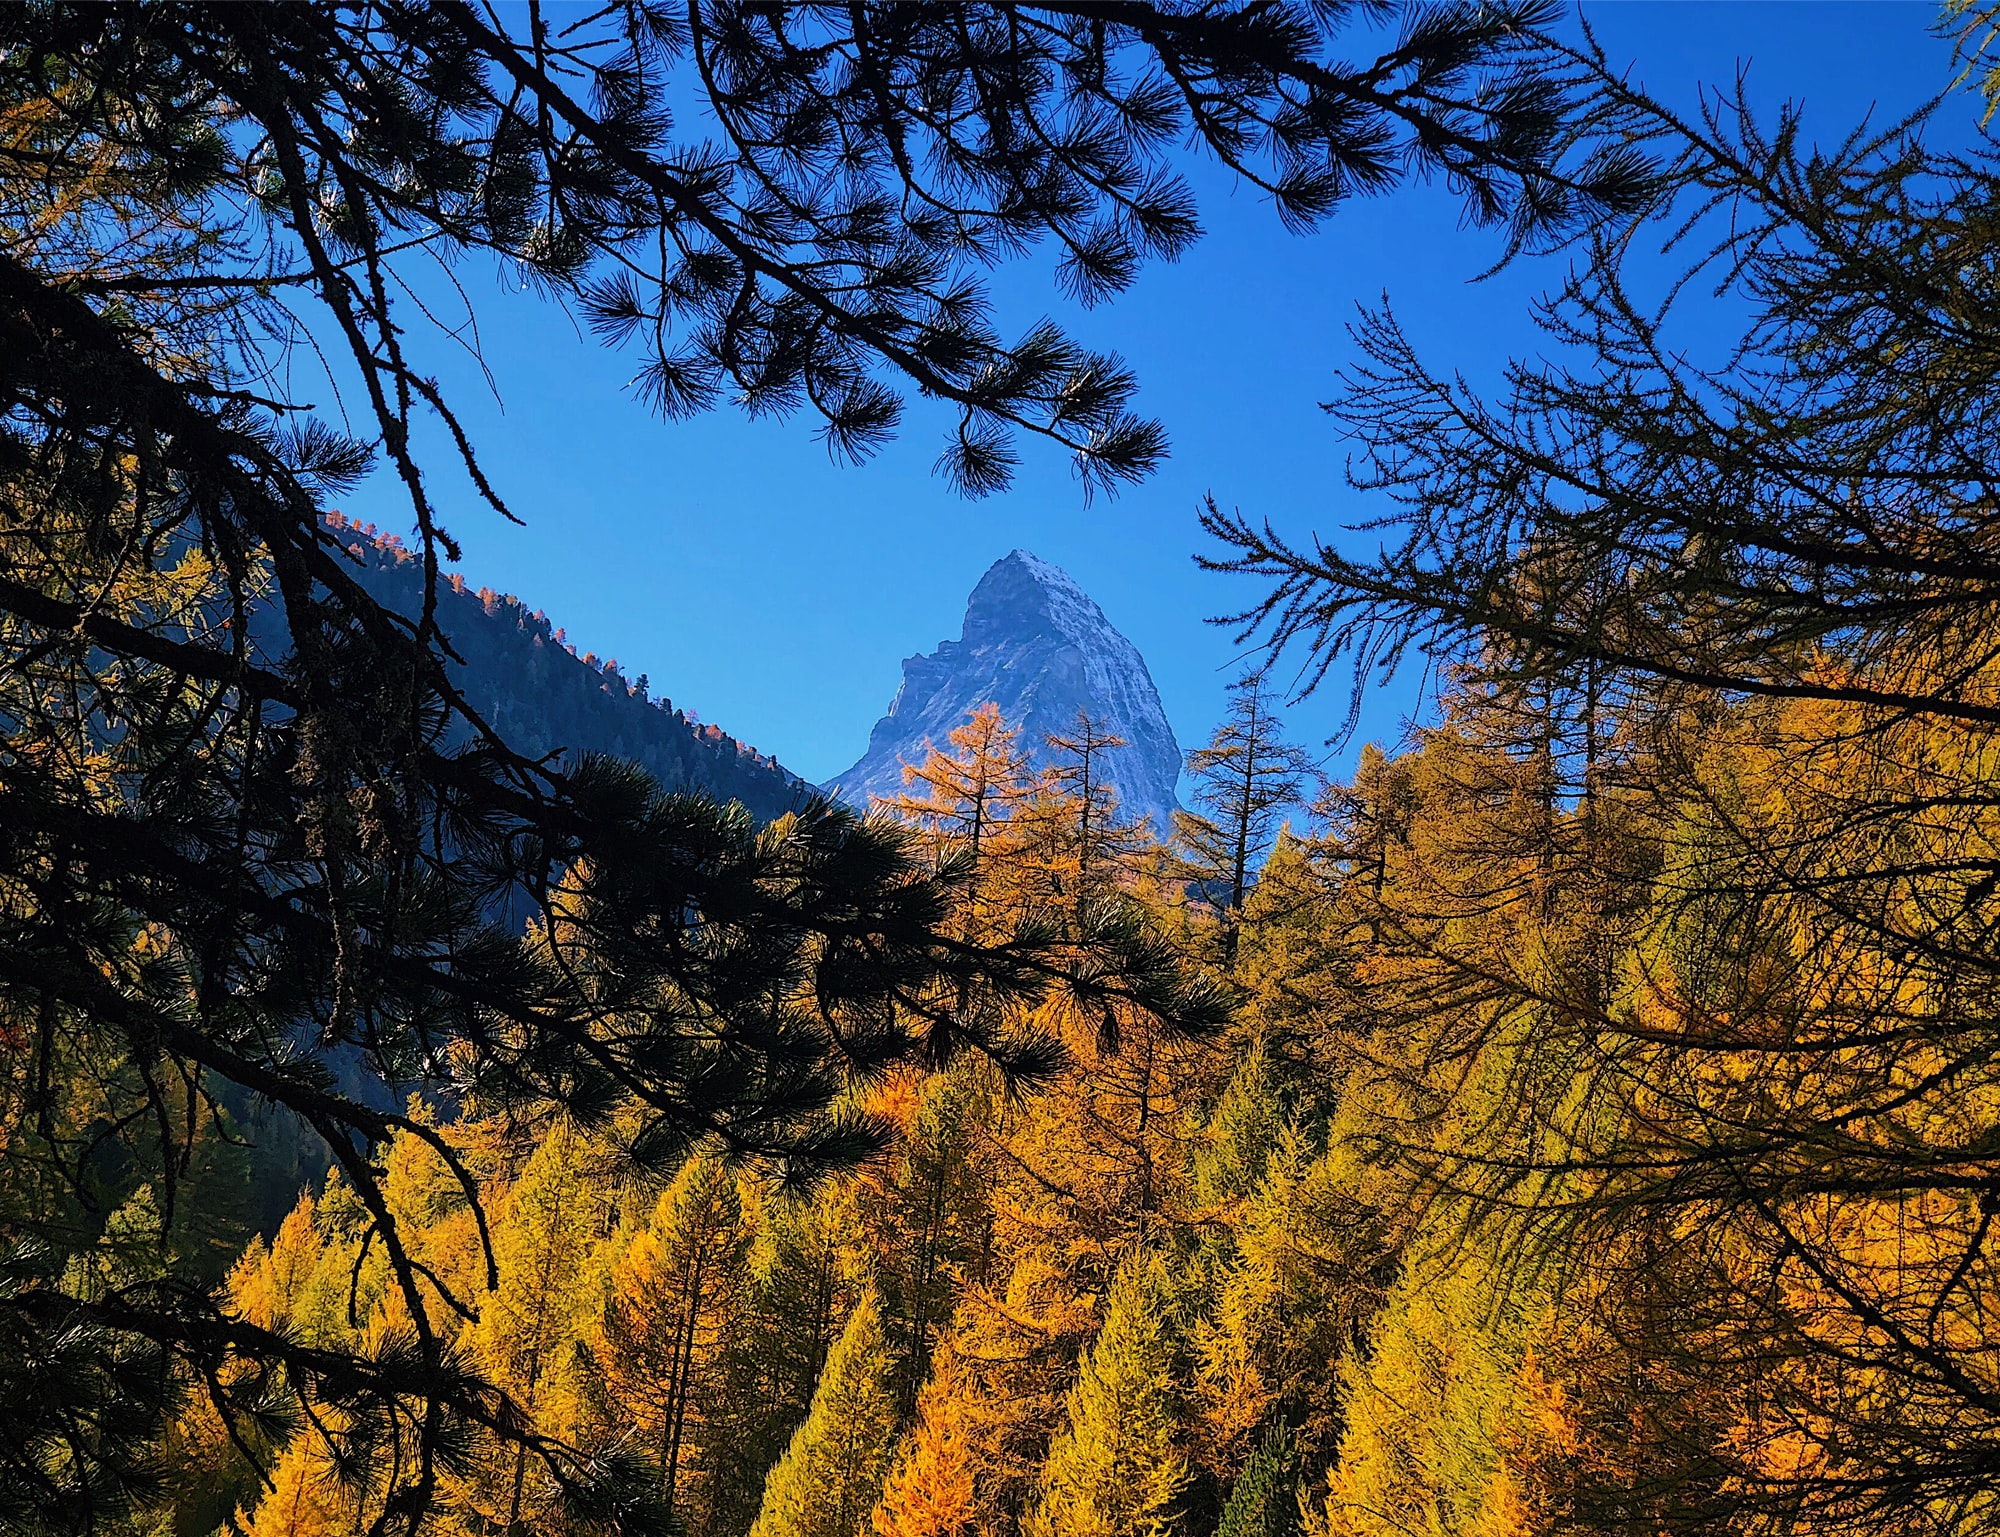 A beautiful autumn day in Zermatt led us through a forest path close with beautiful views of the Matterhorn. The yellow leaves on the trees in contrast to the blue sky and mountain, inviting the travelers to come closer.